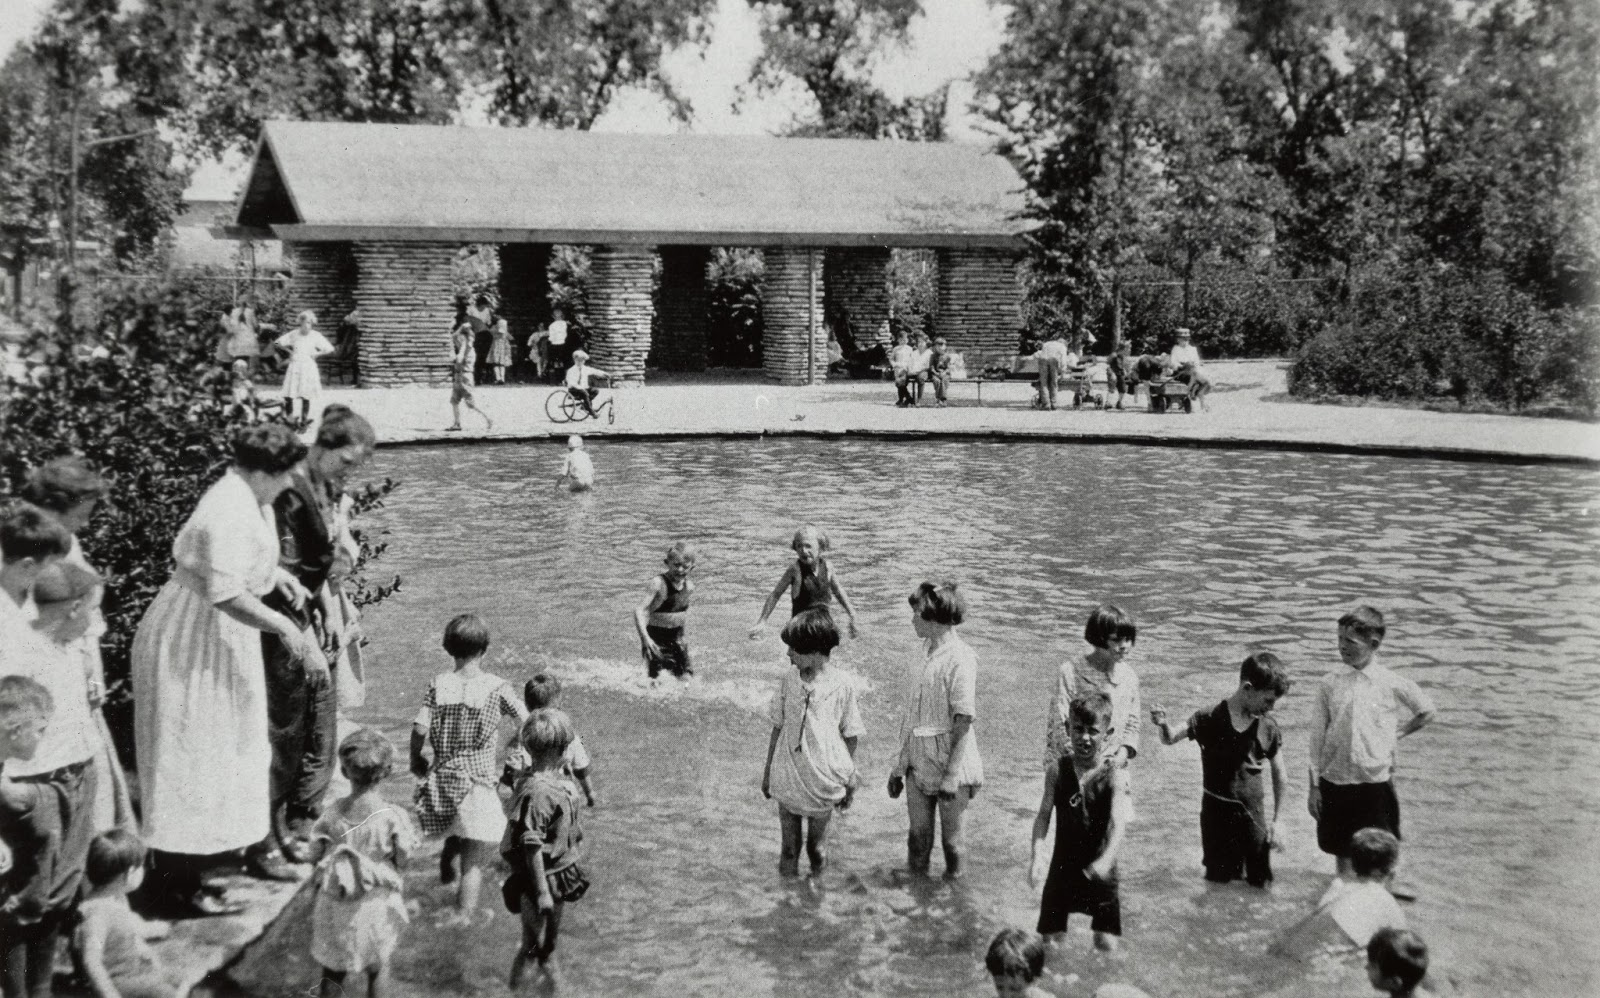 Tour america 39 s history columbus park Knights of columbus swimming pool springfield il